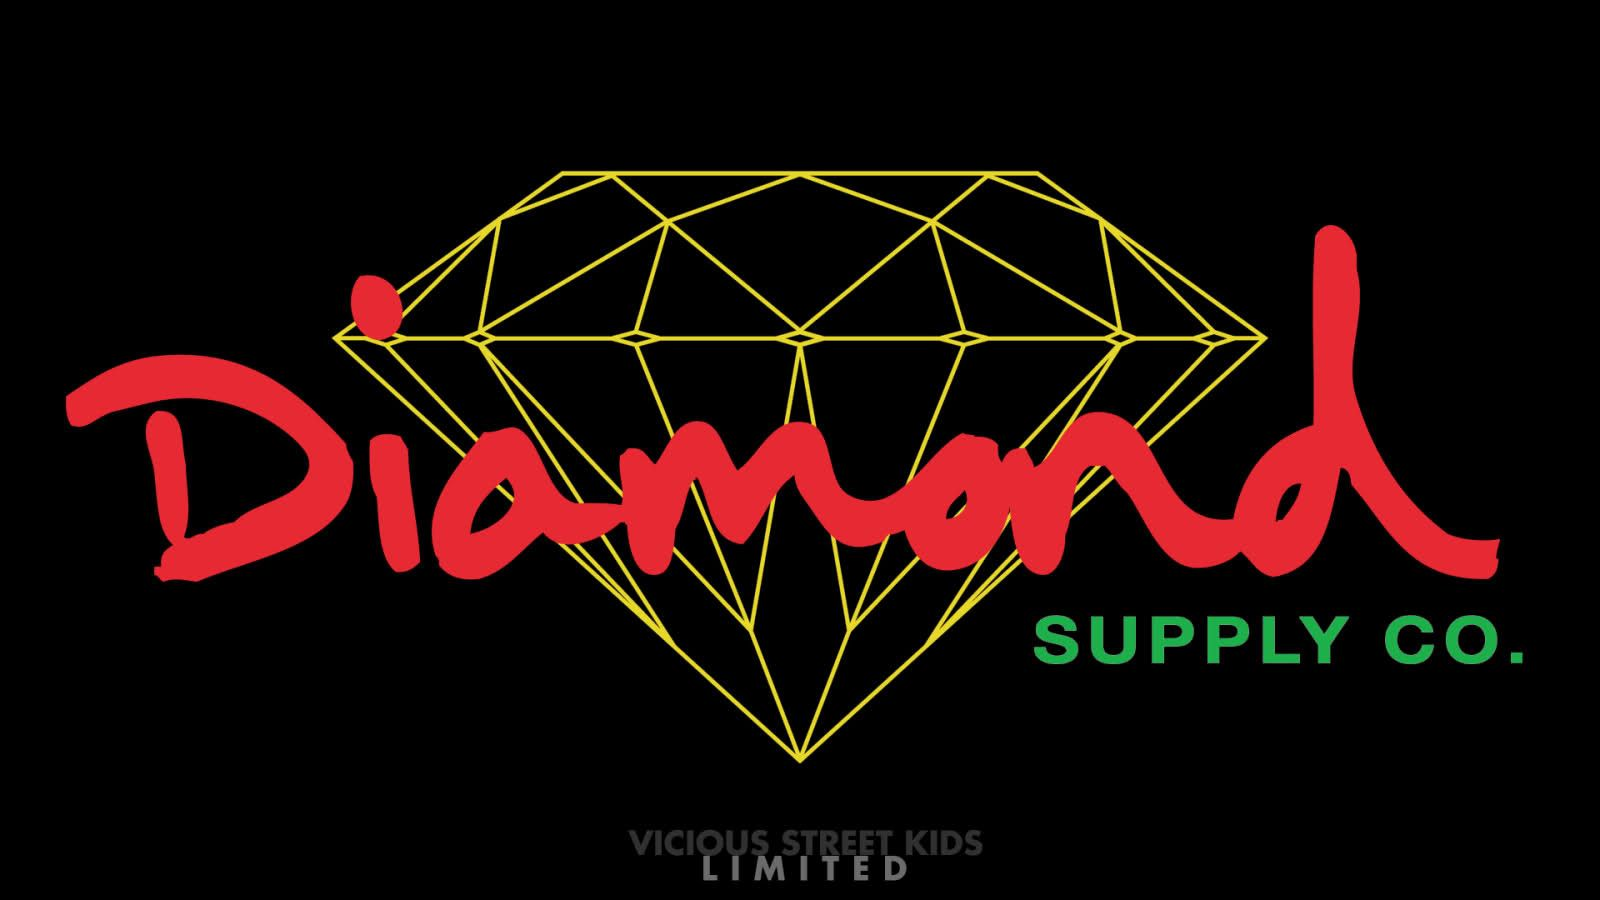 diamond supply co bear wallpaper | HD Wallpapers: Diamond ...